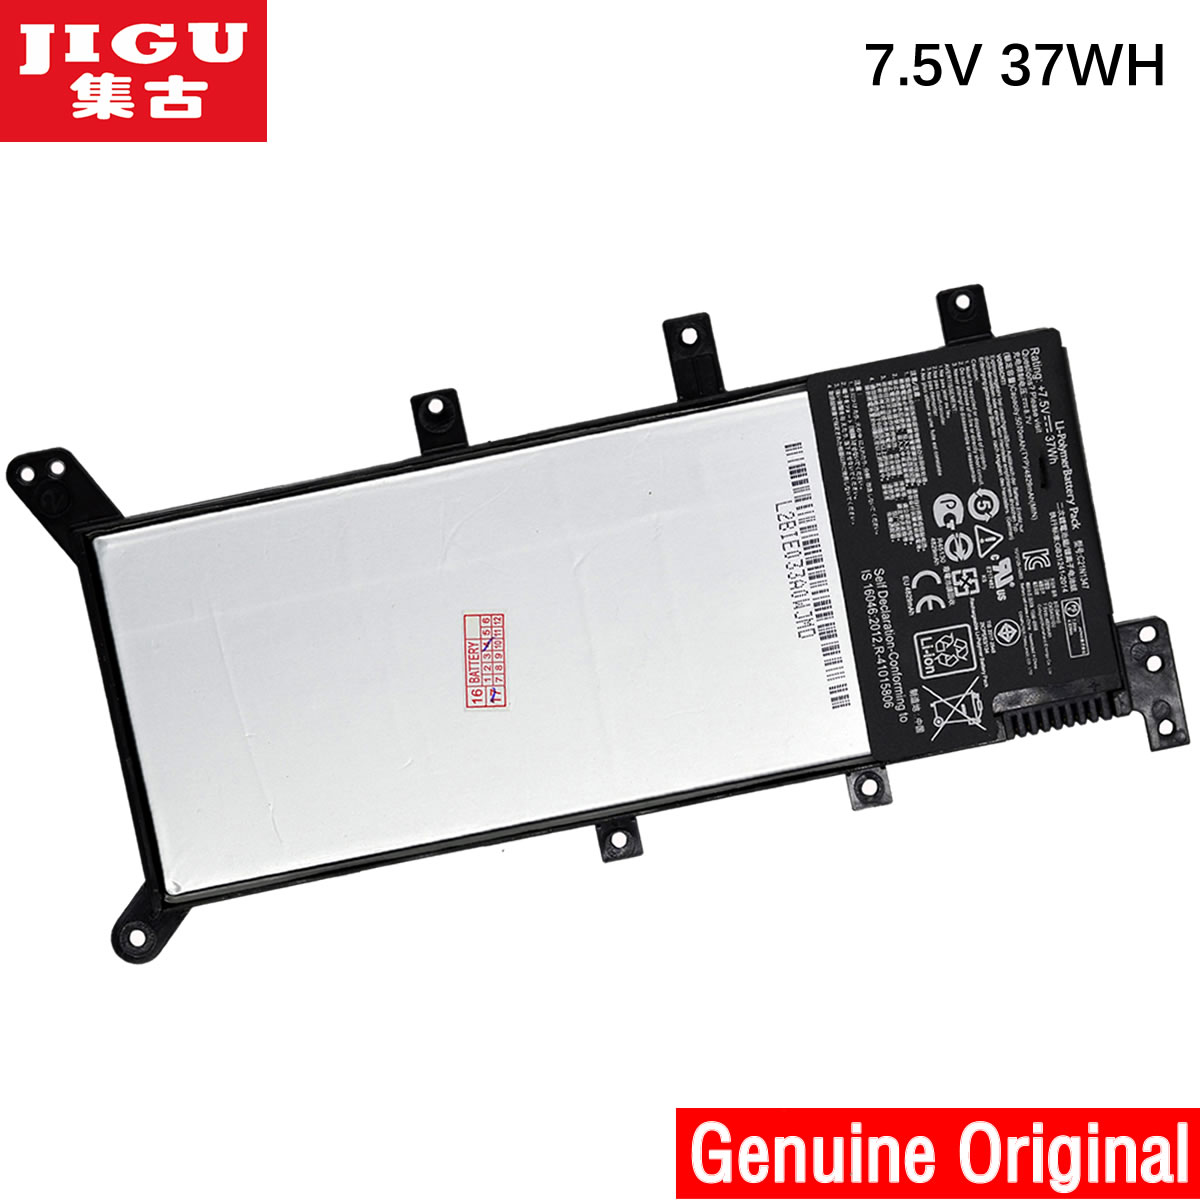 JIGU C21N1347 Original Laptop Battery For ASUS X555LD A555LD4010 X555 X555LD4210 X555LA A555LD4030 X555LD4010 X555LB